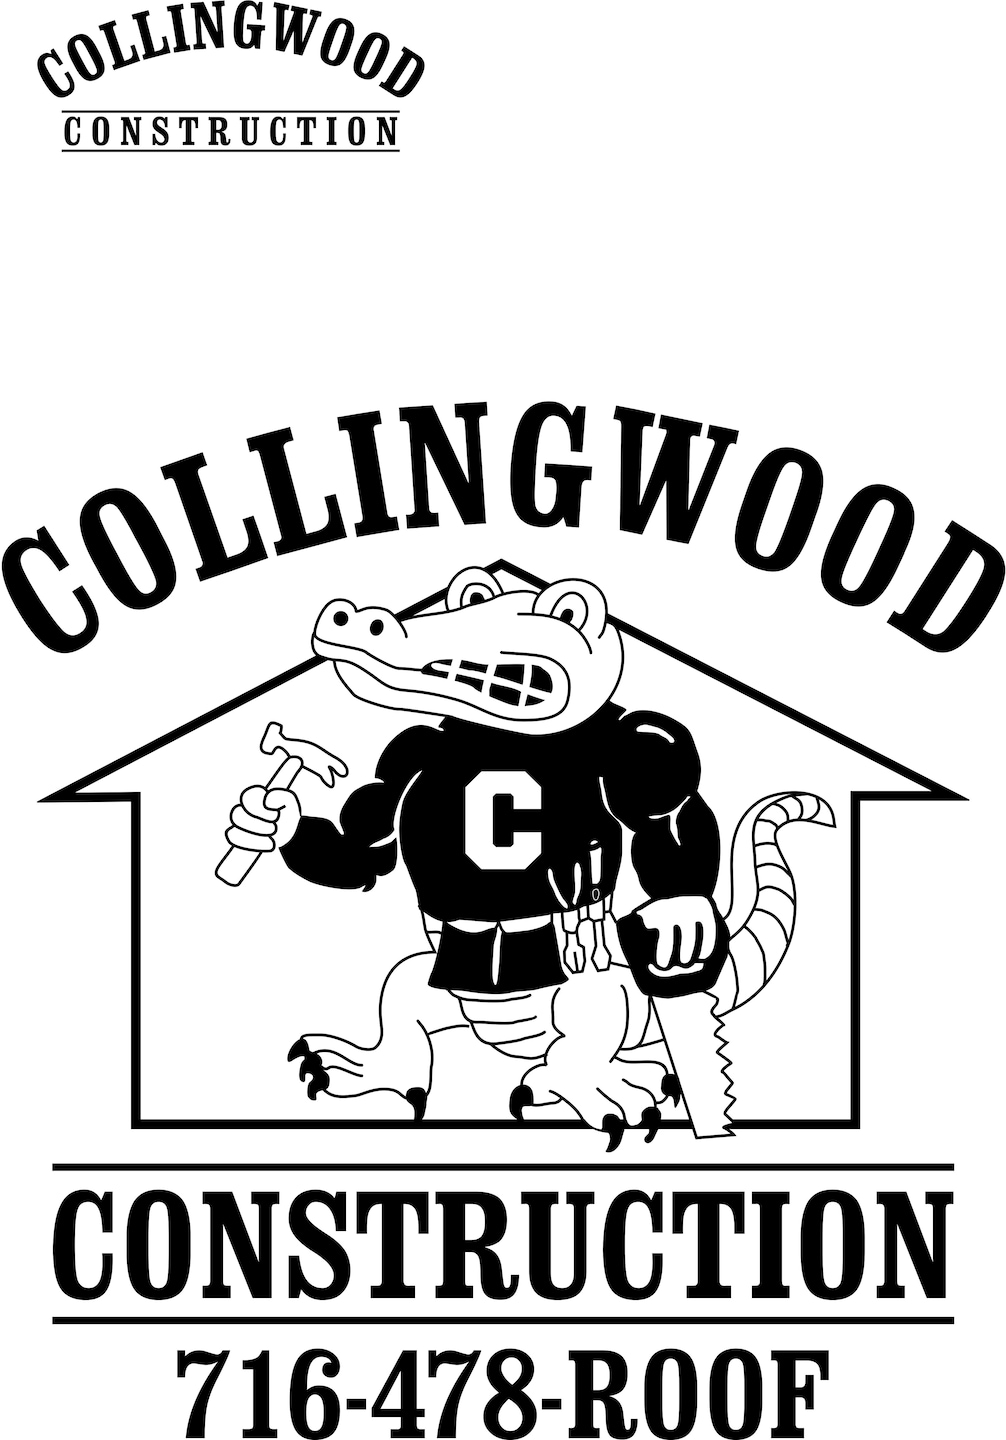 COLLINGWOOD CONSTRUCTION